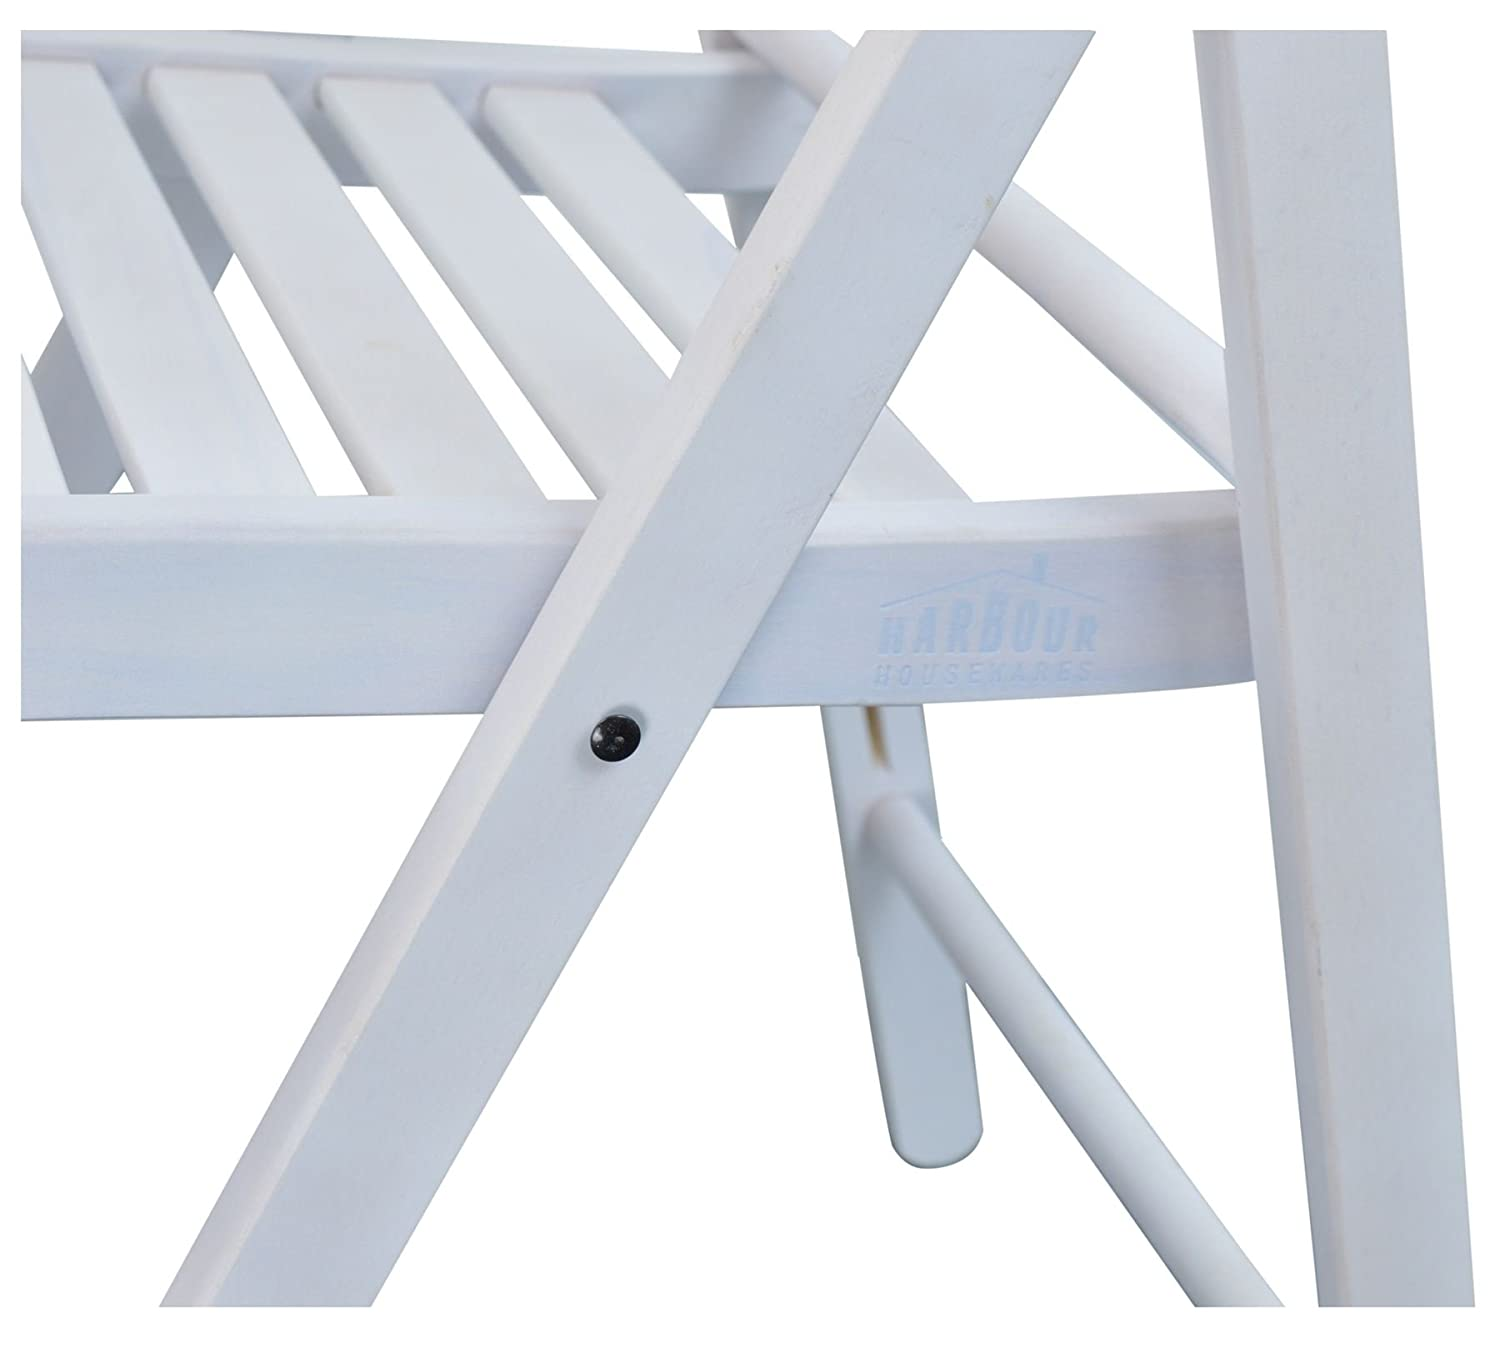 Harbour Housewares Wooden Folding Chairs Pack of 4 White Wood Colour